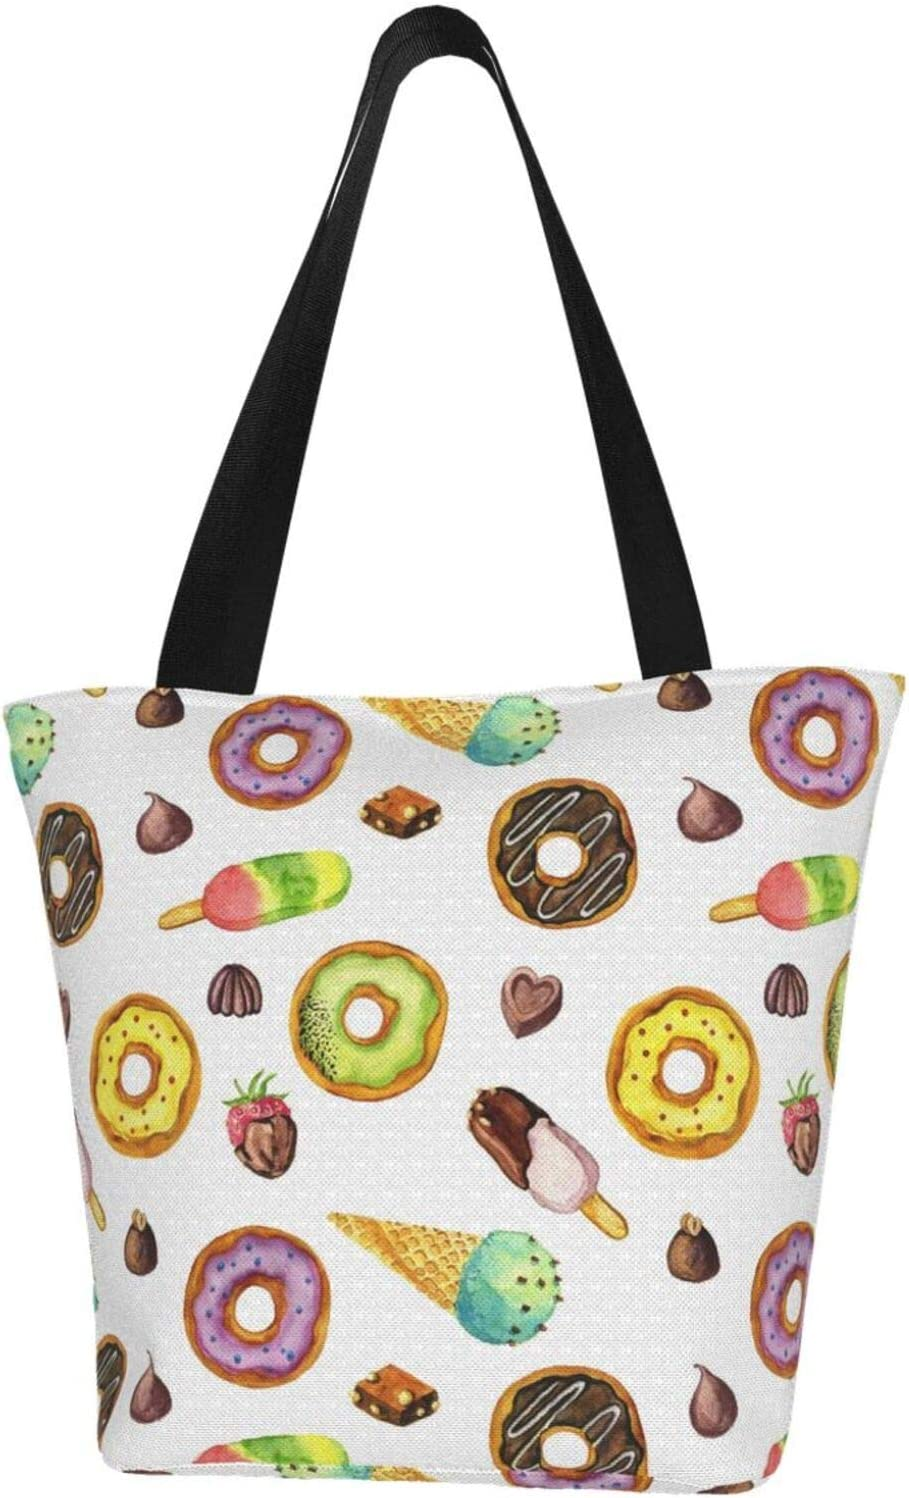 AKLID Watercolor Ice Quantity limited Cream Donuts 1 year warranty Water Resistant Large Extra